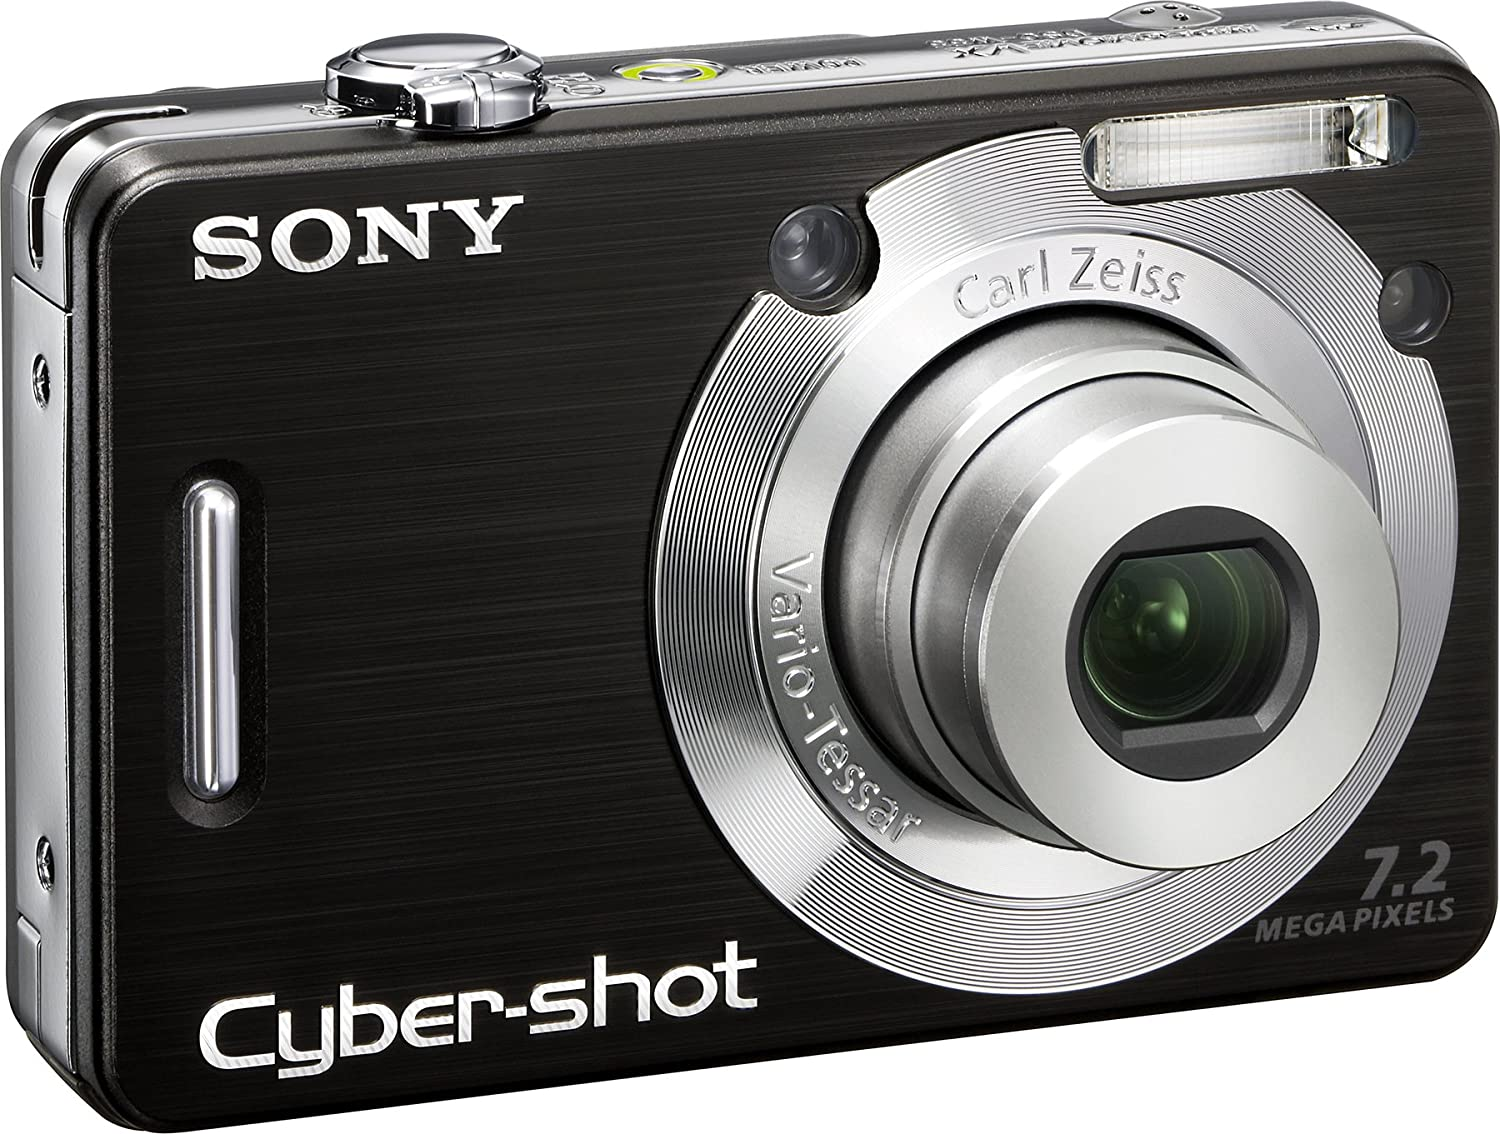 Amazon.com : Sony Cybershot DSCW55 7.2MP Digital Camera with 3x Optical  Zoom (Black) (OLD MODEL) : Point And Shoot Digital Cameras : Camera & Photo